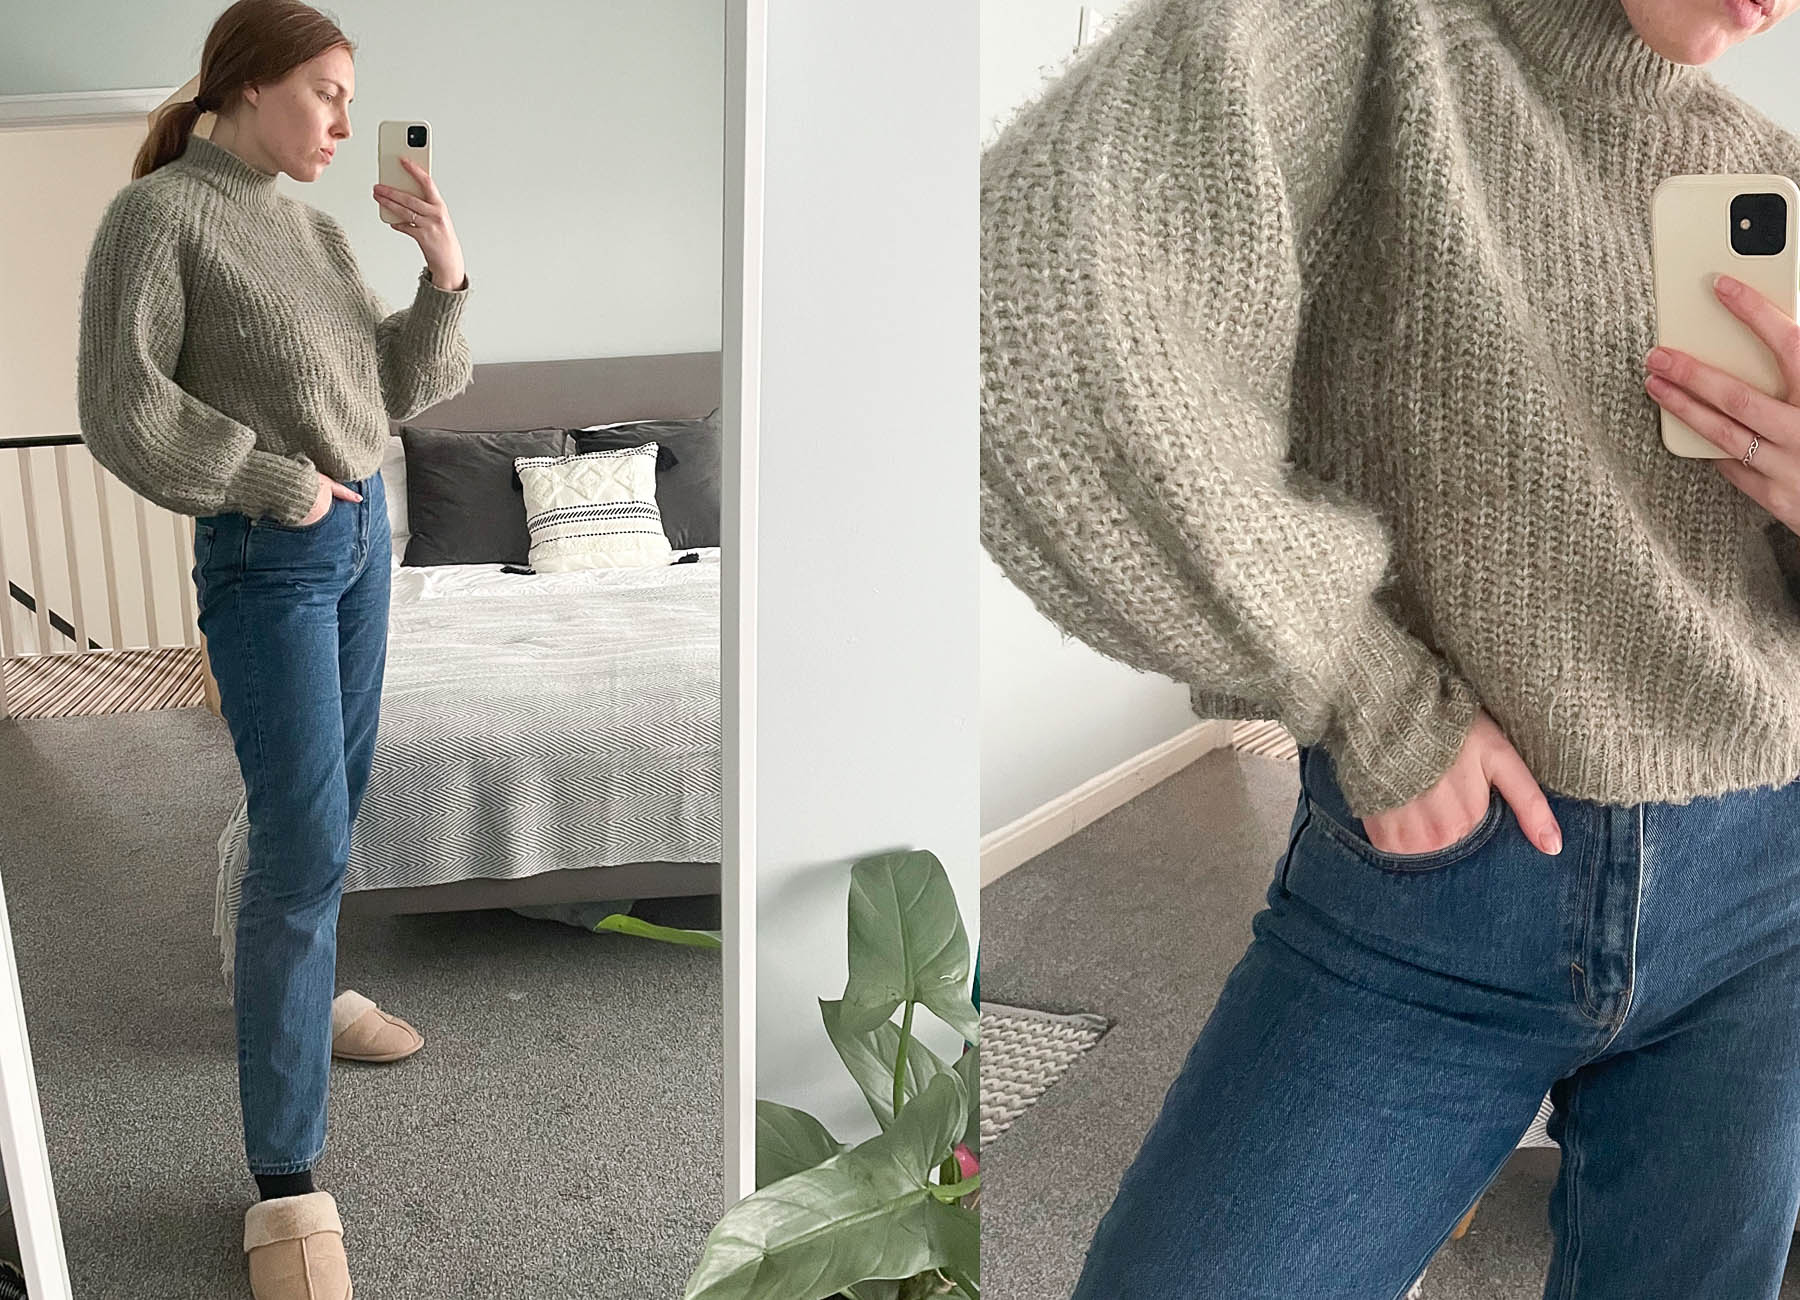 work from home wfh style outfits straight leg weekday voyage jeans and Zara sage knit